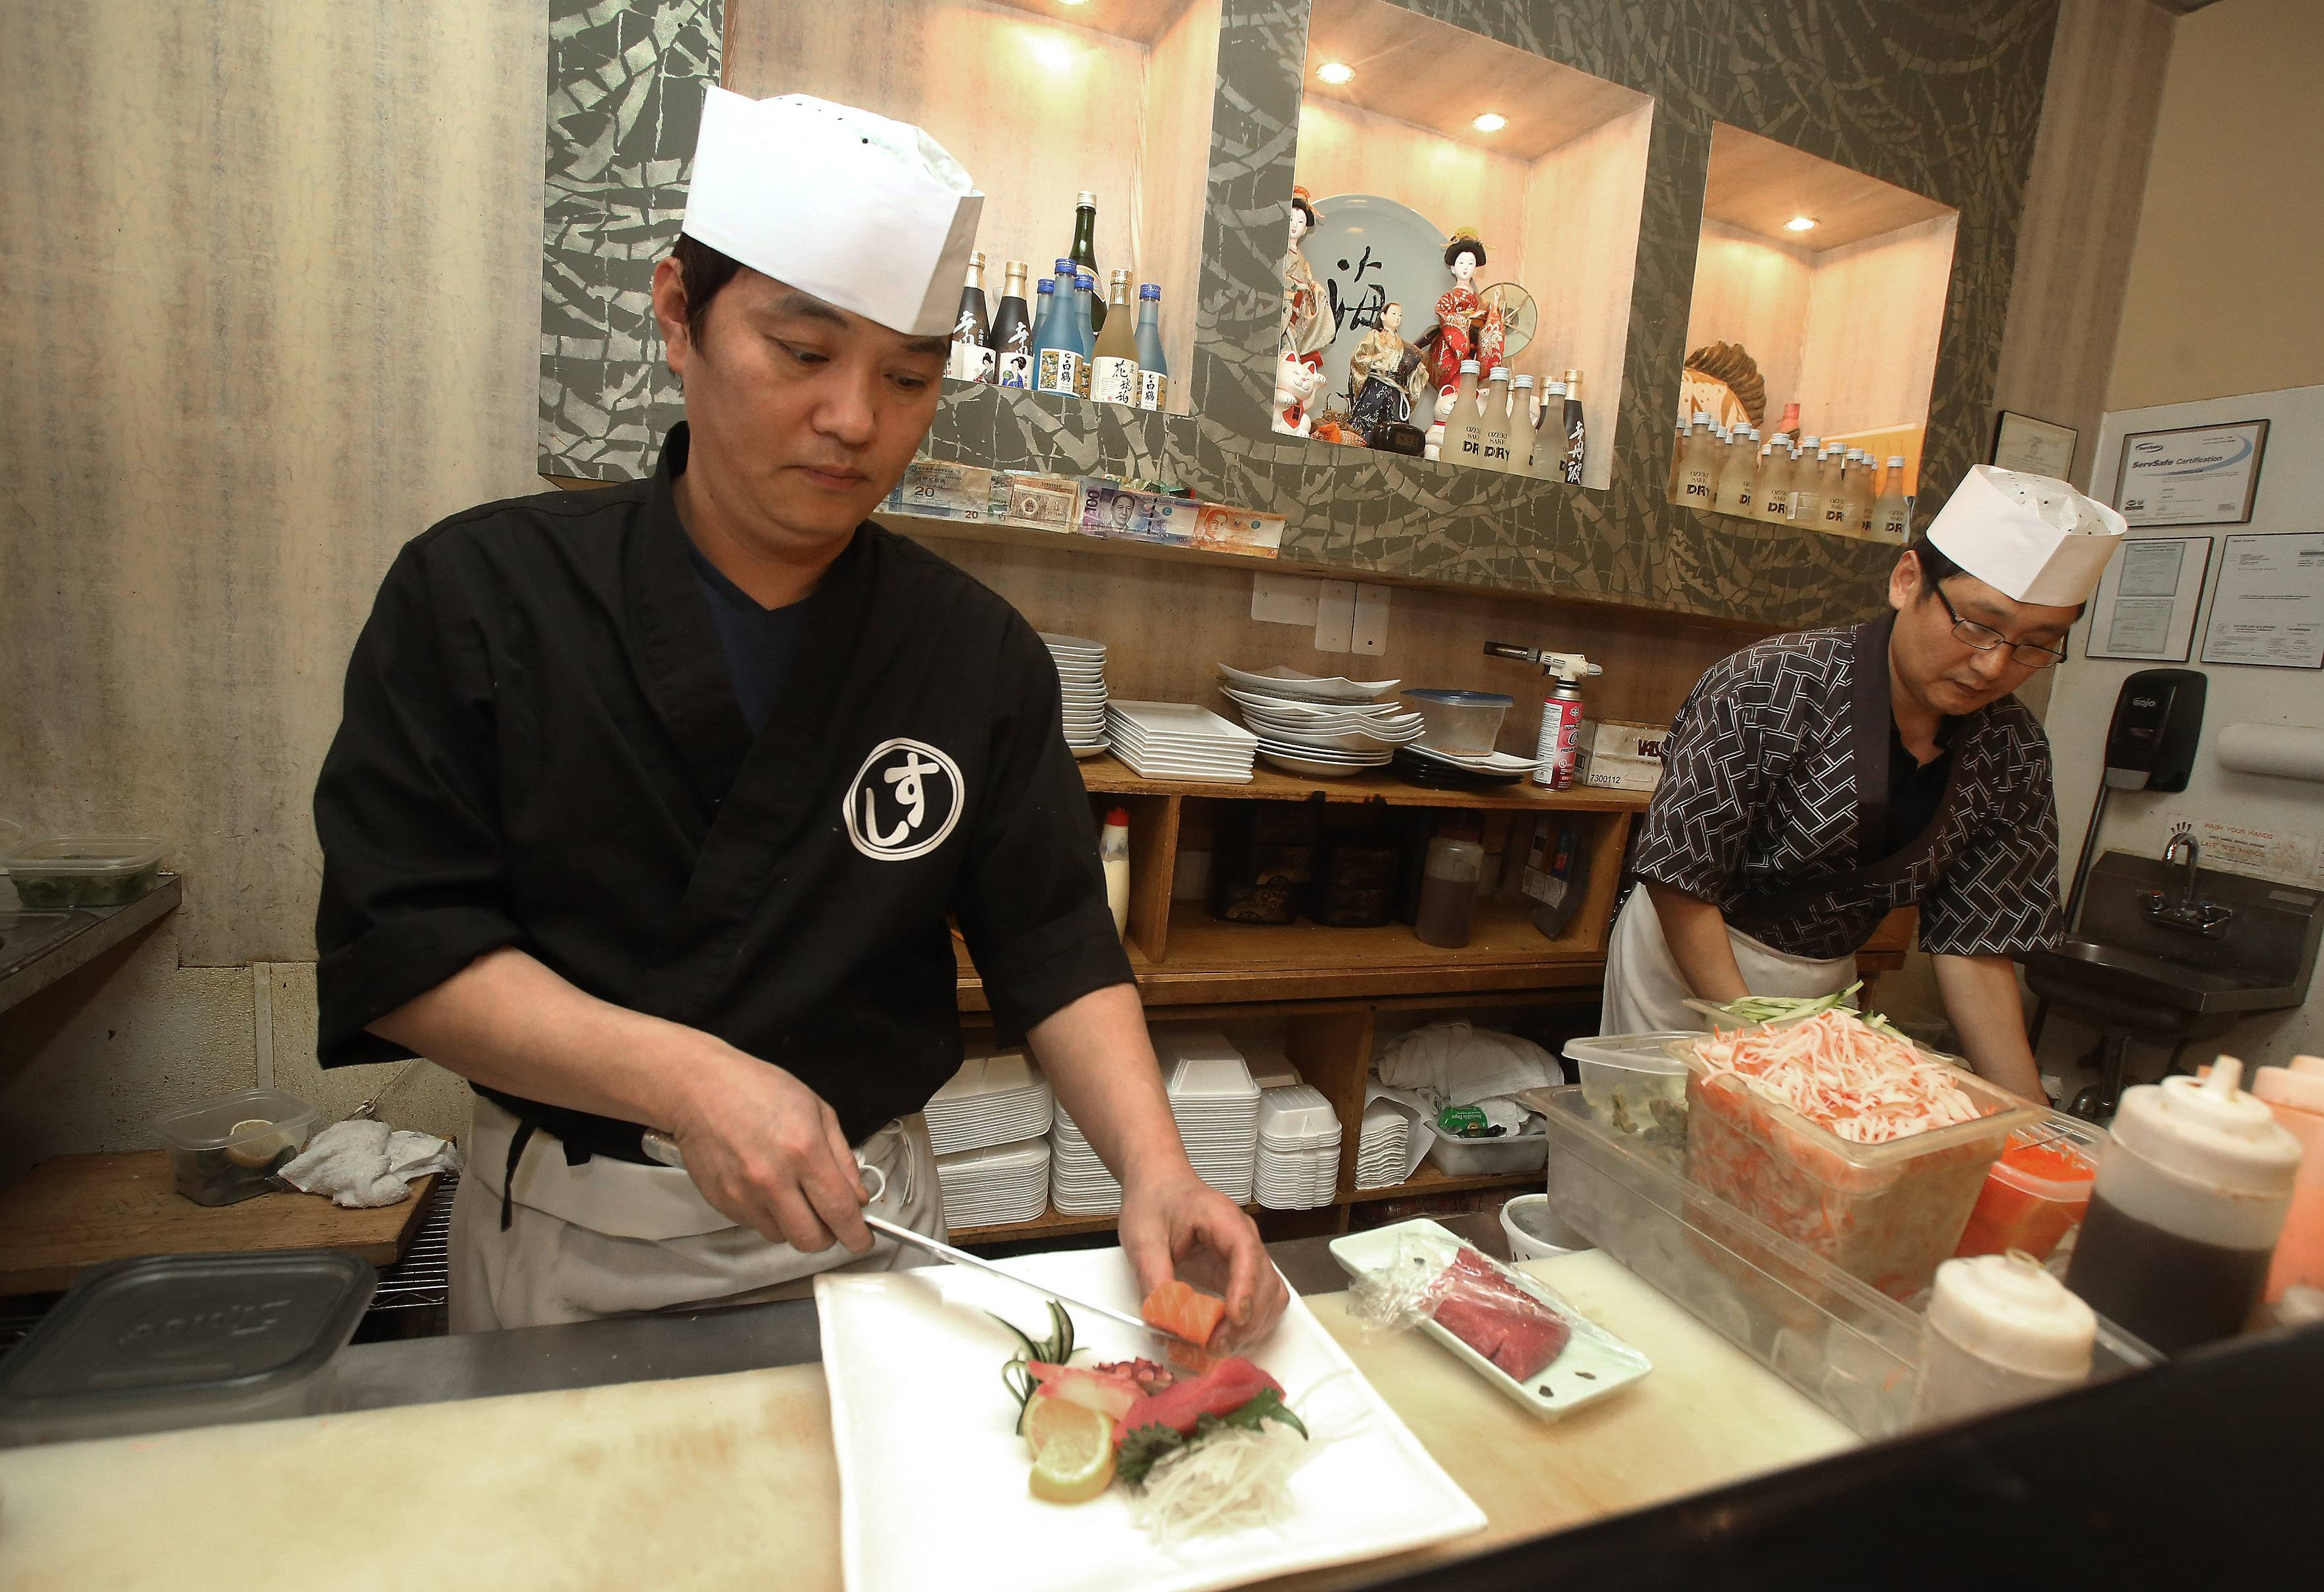 Head chef John Chun, left, and first chef Sean Jun create sushi rolls Hayashi Japanese Restaurant in Gurnee.